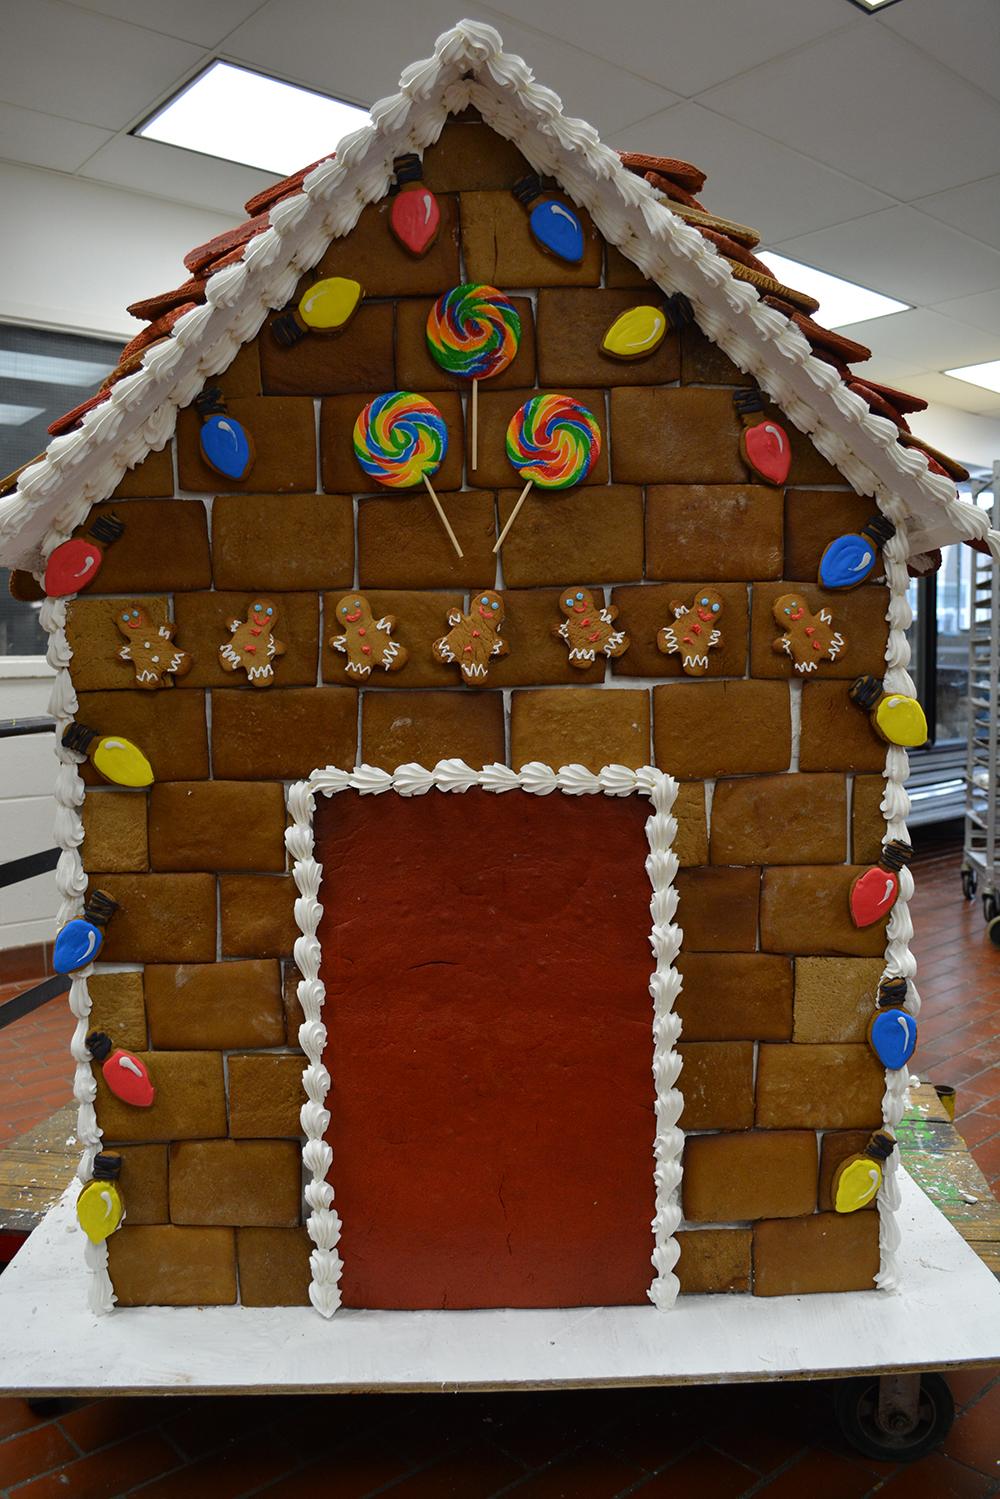 The gingerbread house nearly done.